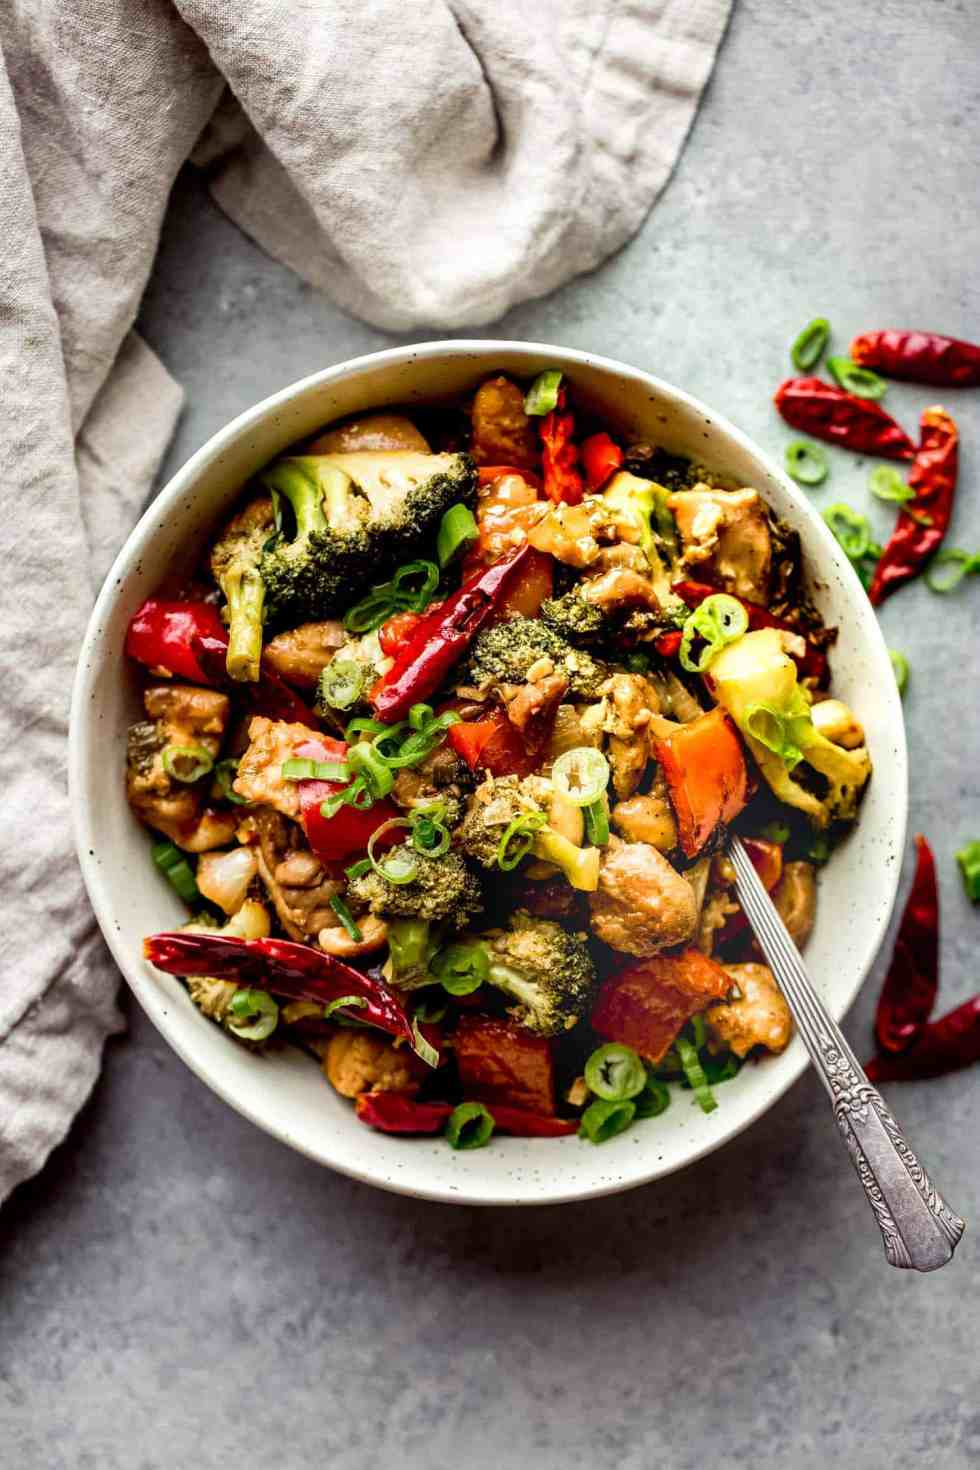 cashew chicken with broccoli in a bowl